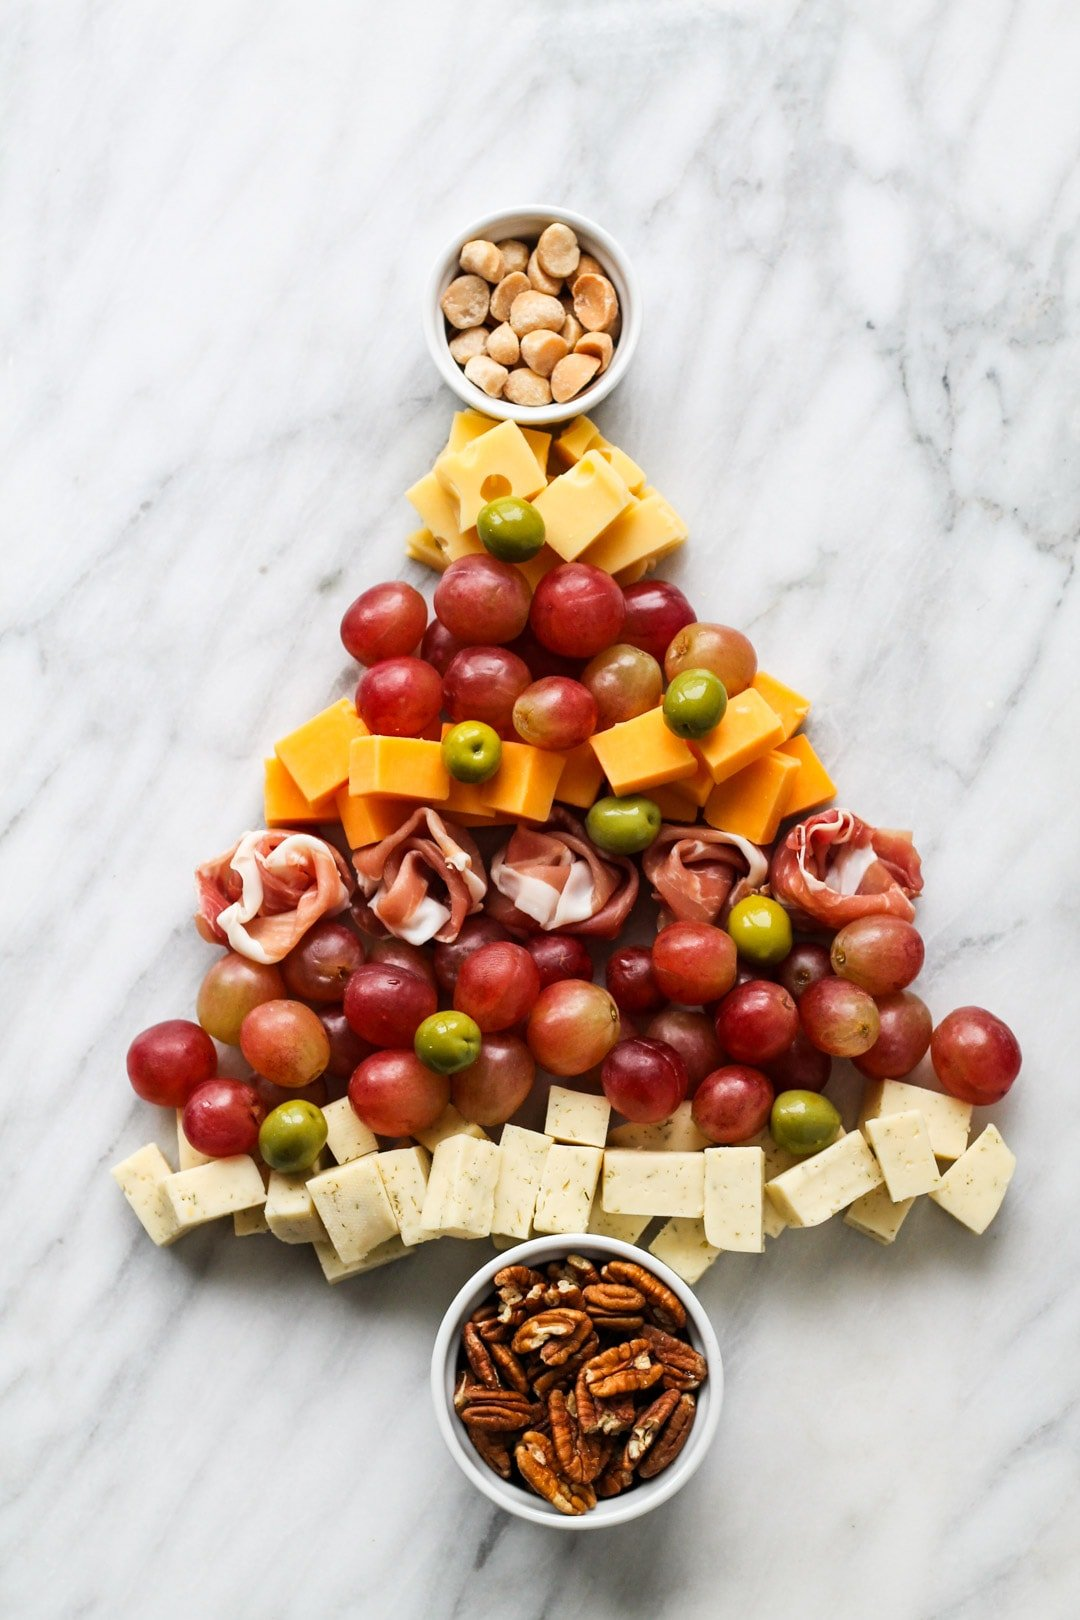 Low FODMAP Cheese Board shaped like a Christmas tree